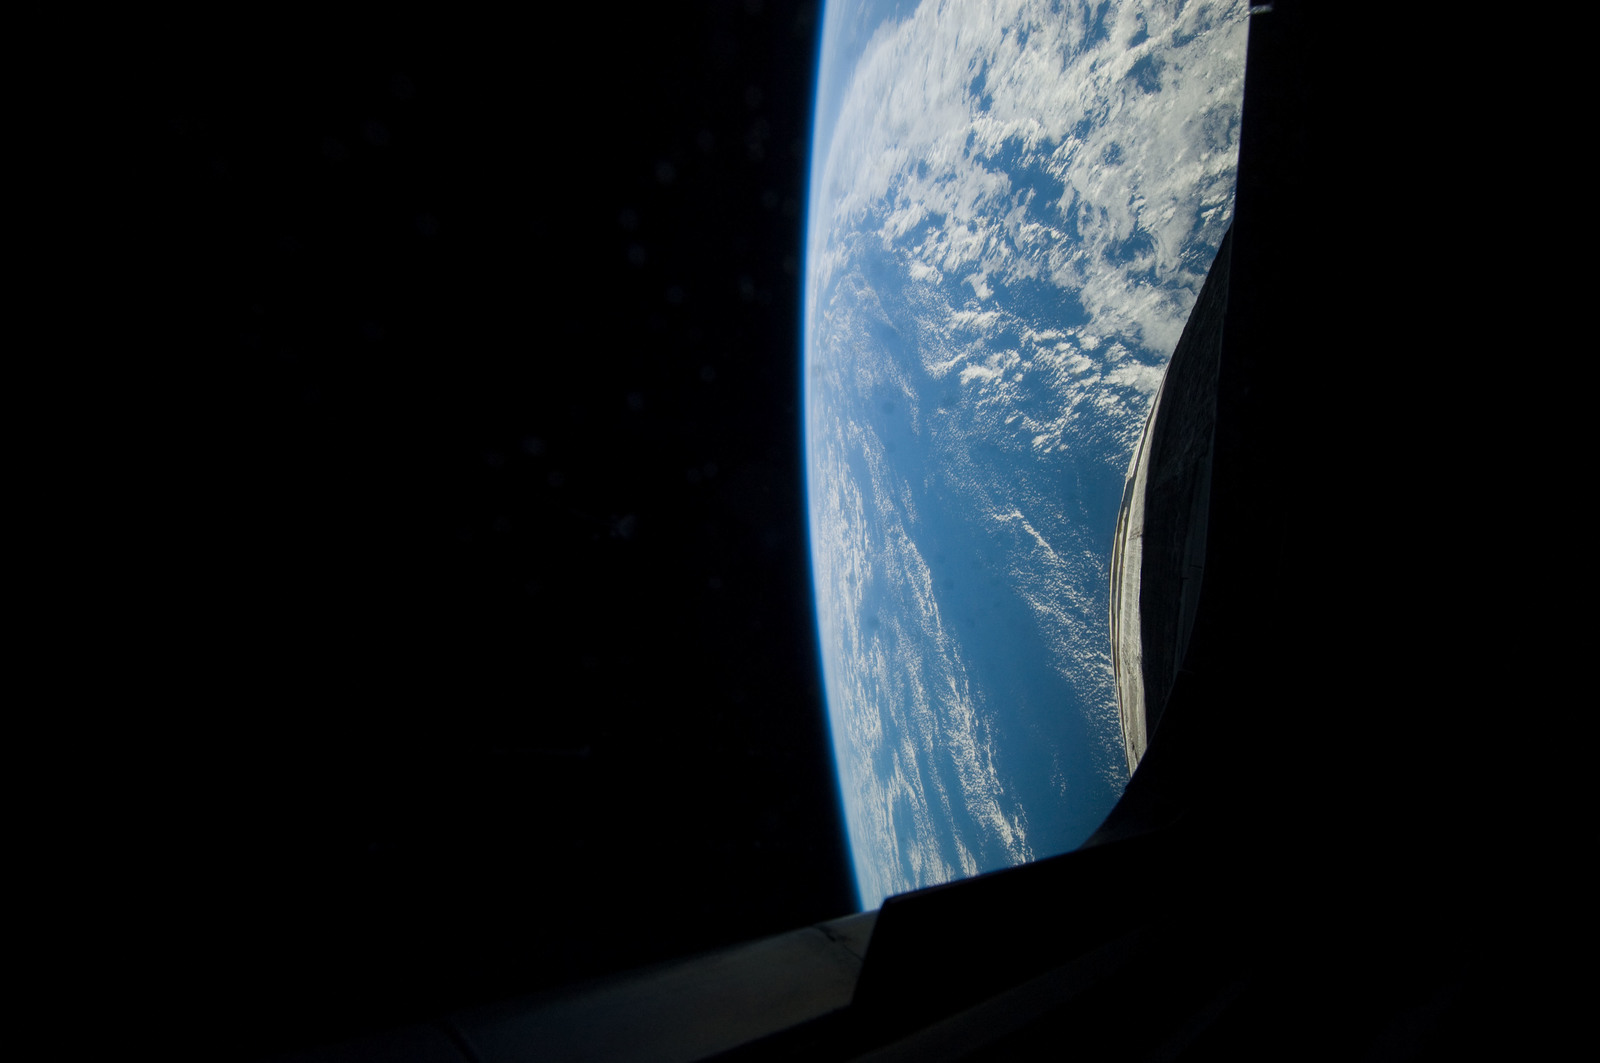 s133E006958 - STS-133 - Earth Observation taken by the STS-133 crew